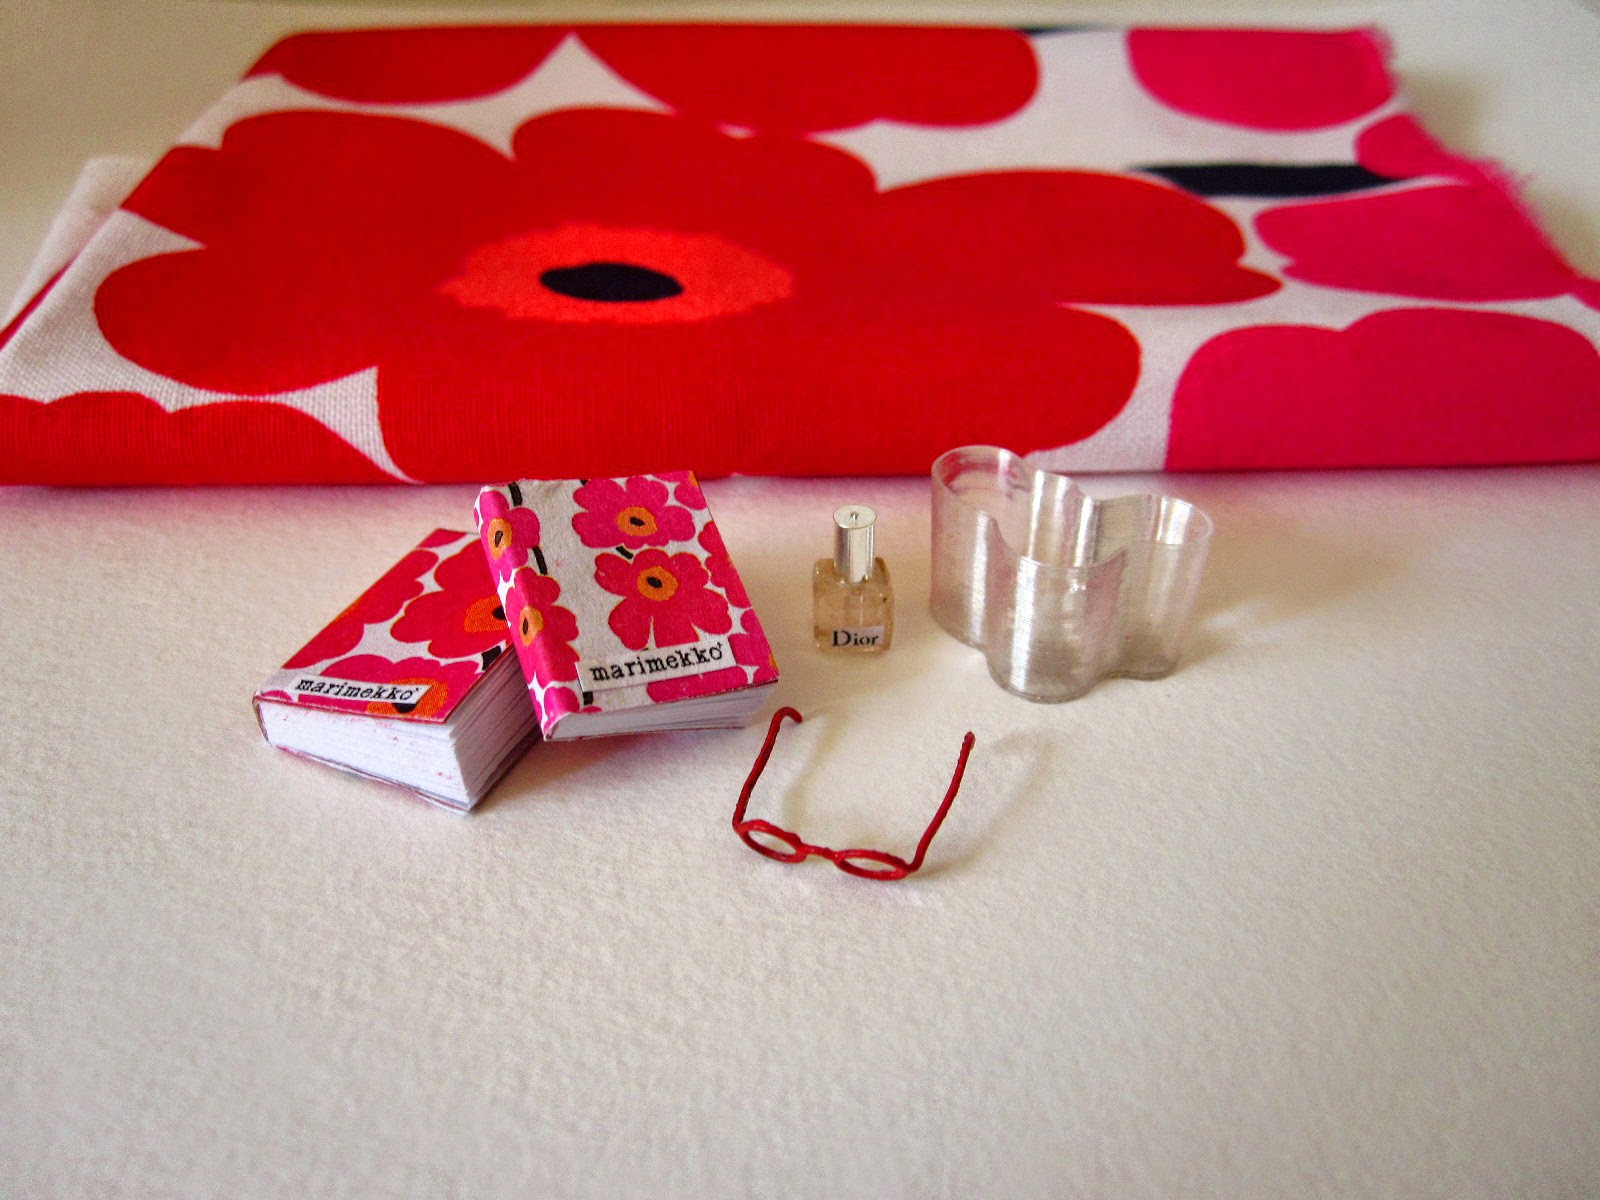 Miniature Marimekko books, red reading glasses, Dior perfume bottle and  Aalto vase arranged in front of a piece of full-sized Unikko fabric.